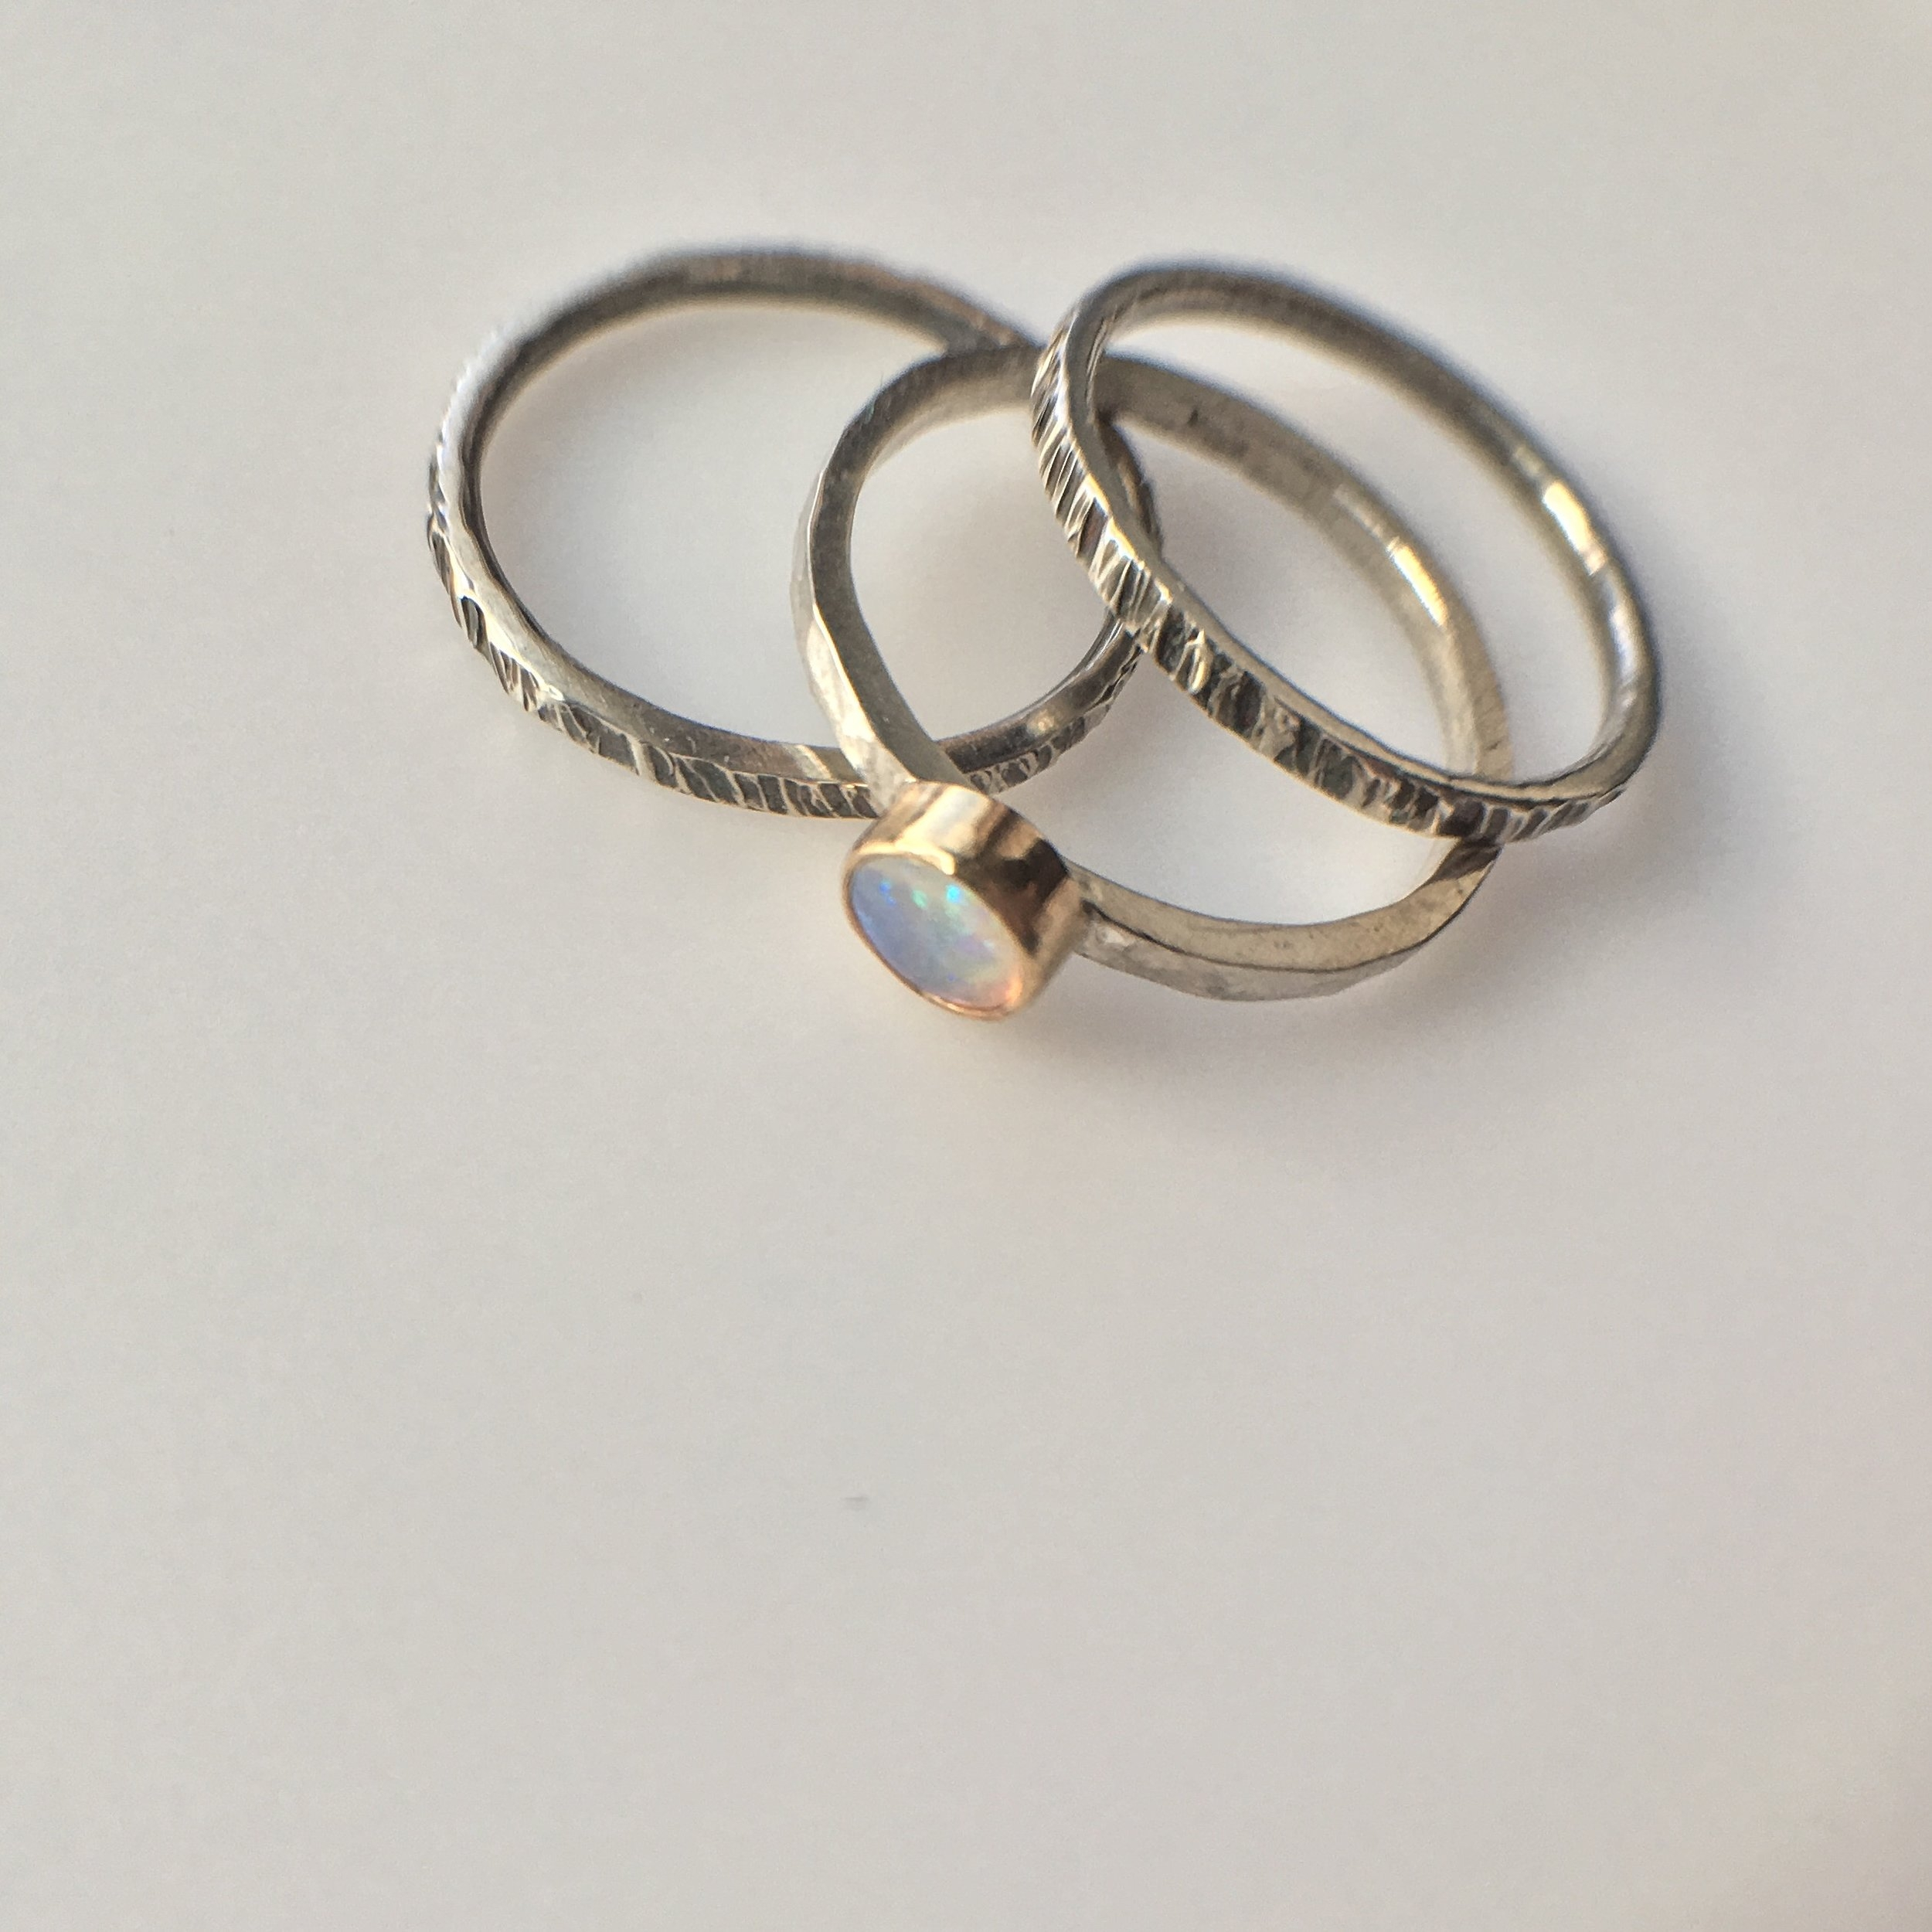 gold-and-silver-stacker-ring-blue-stone